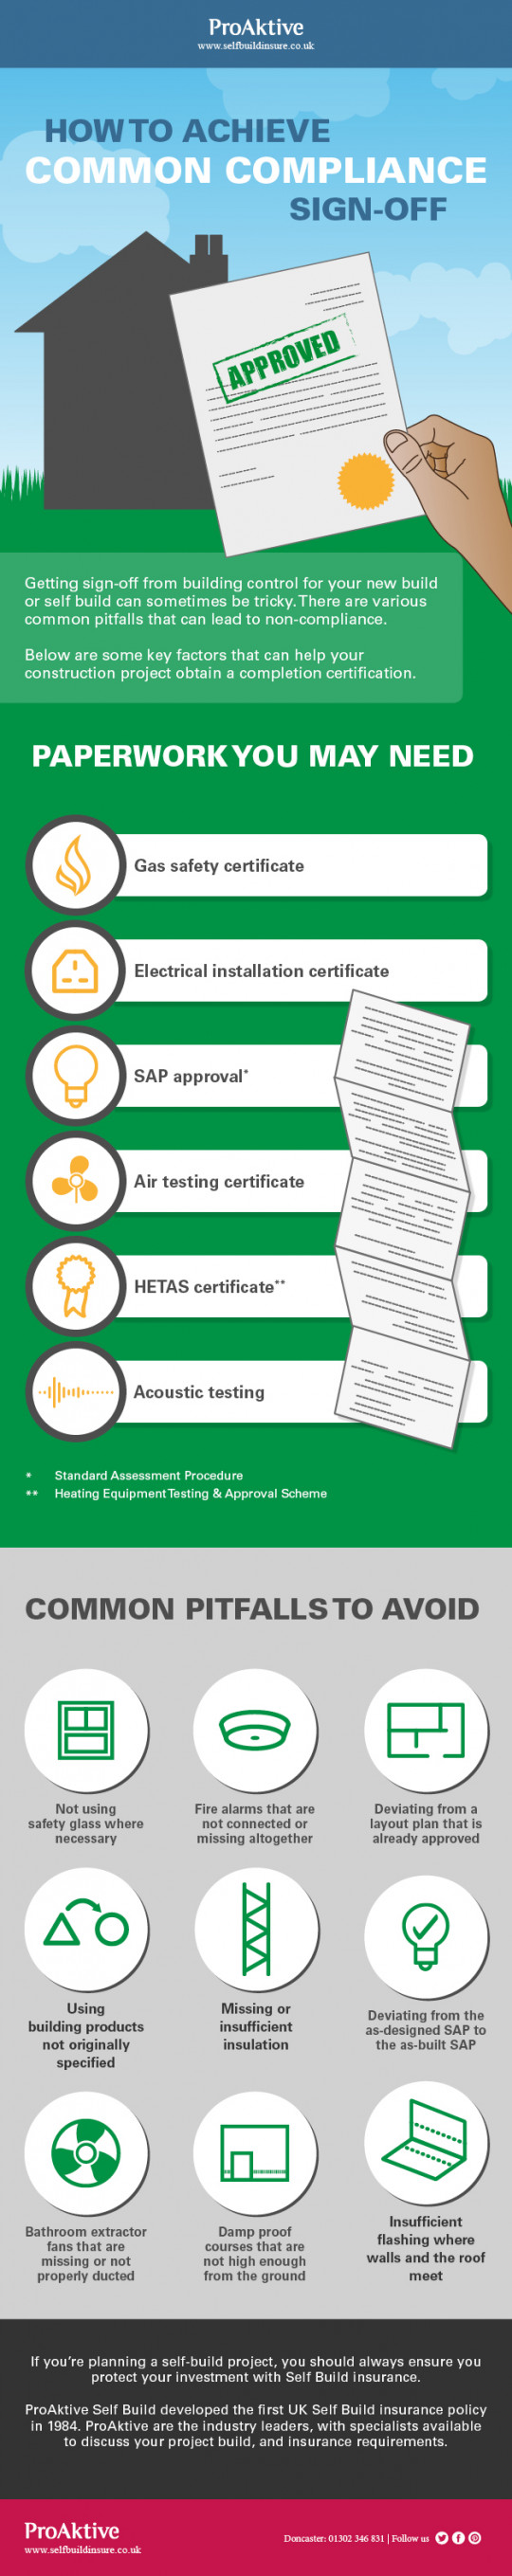 How To Achieve Common Compliance Sign Off